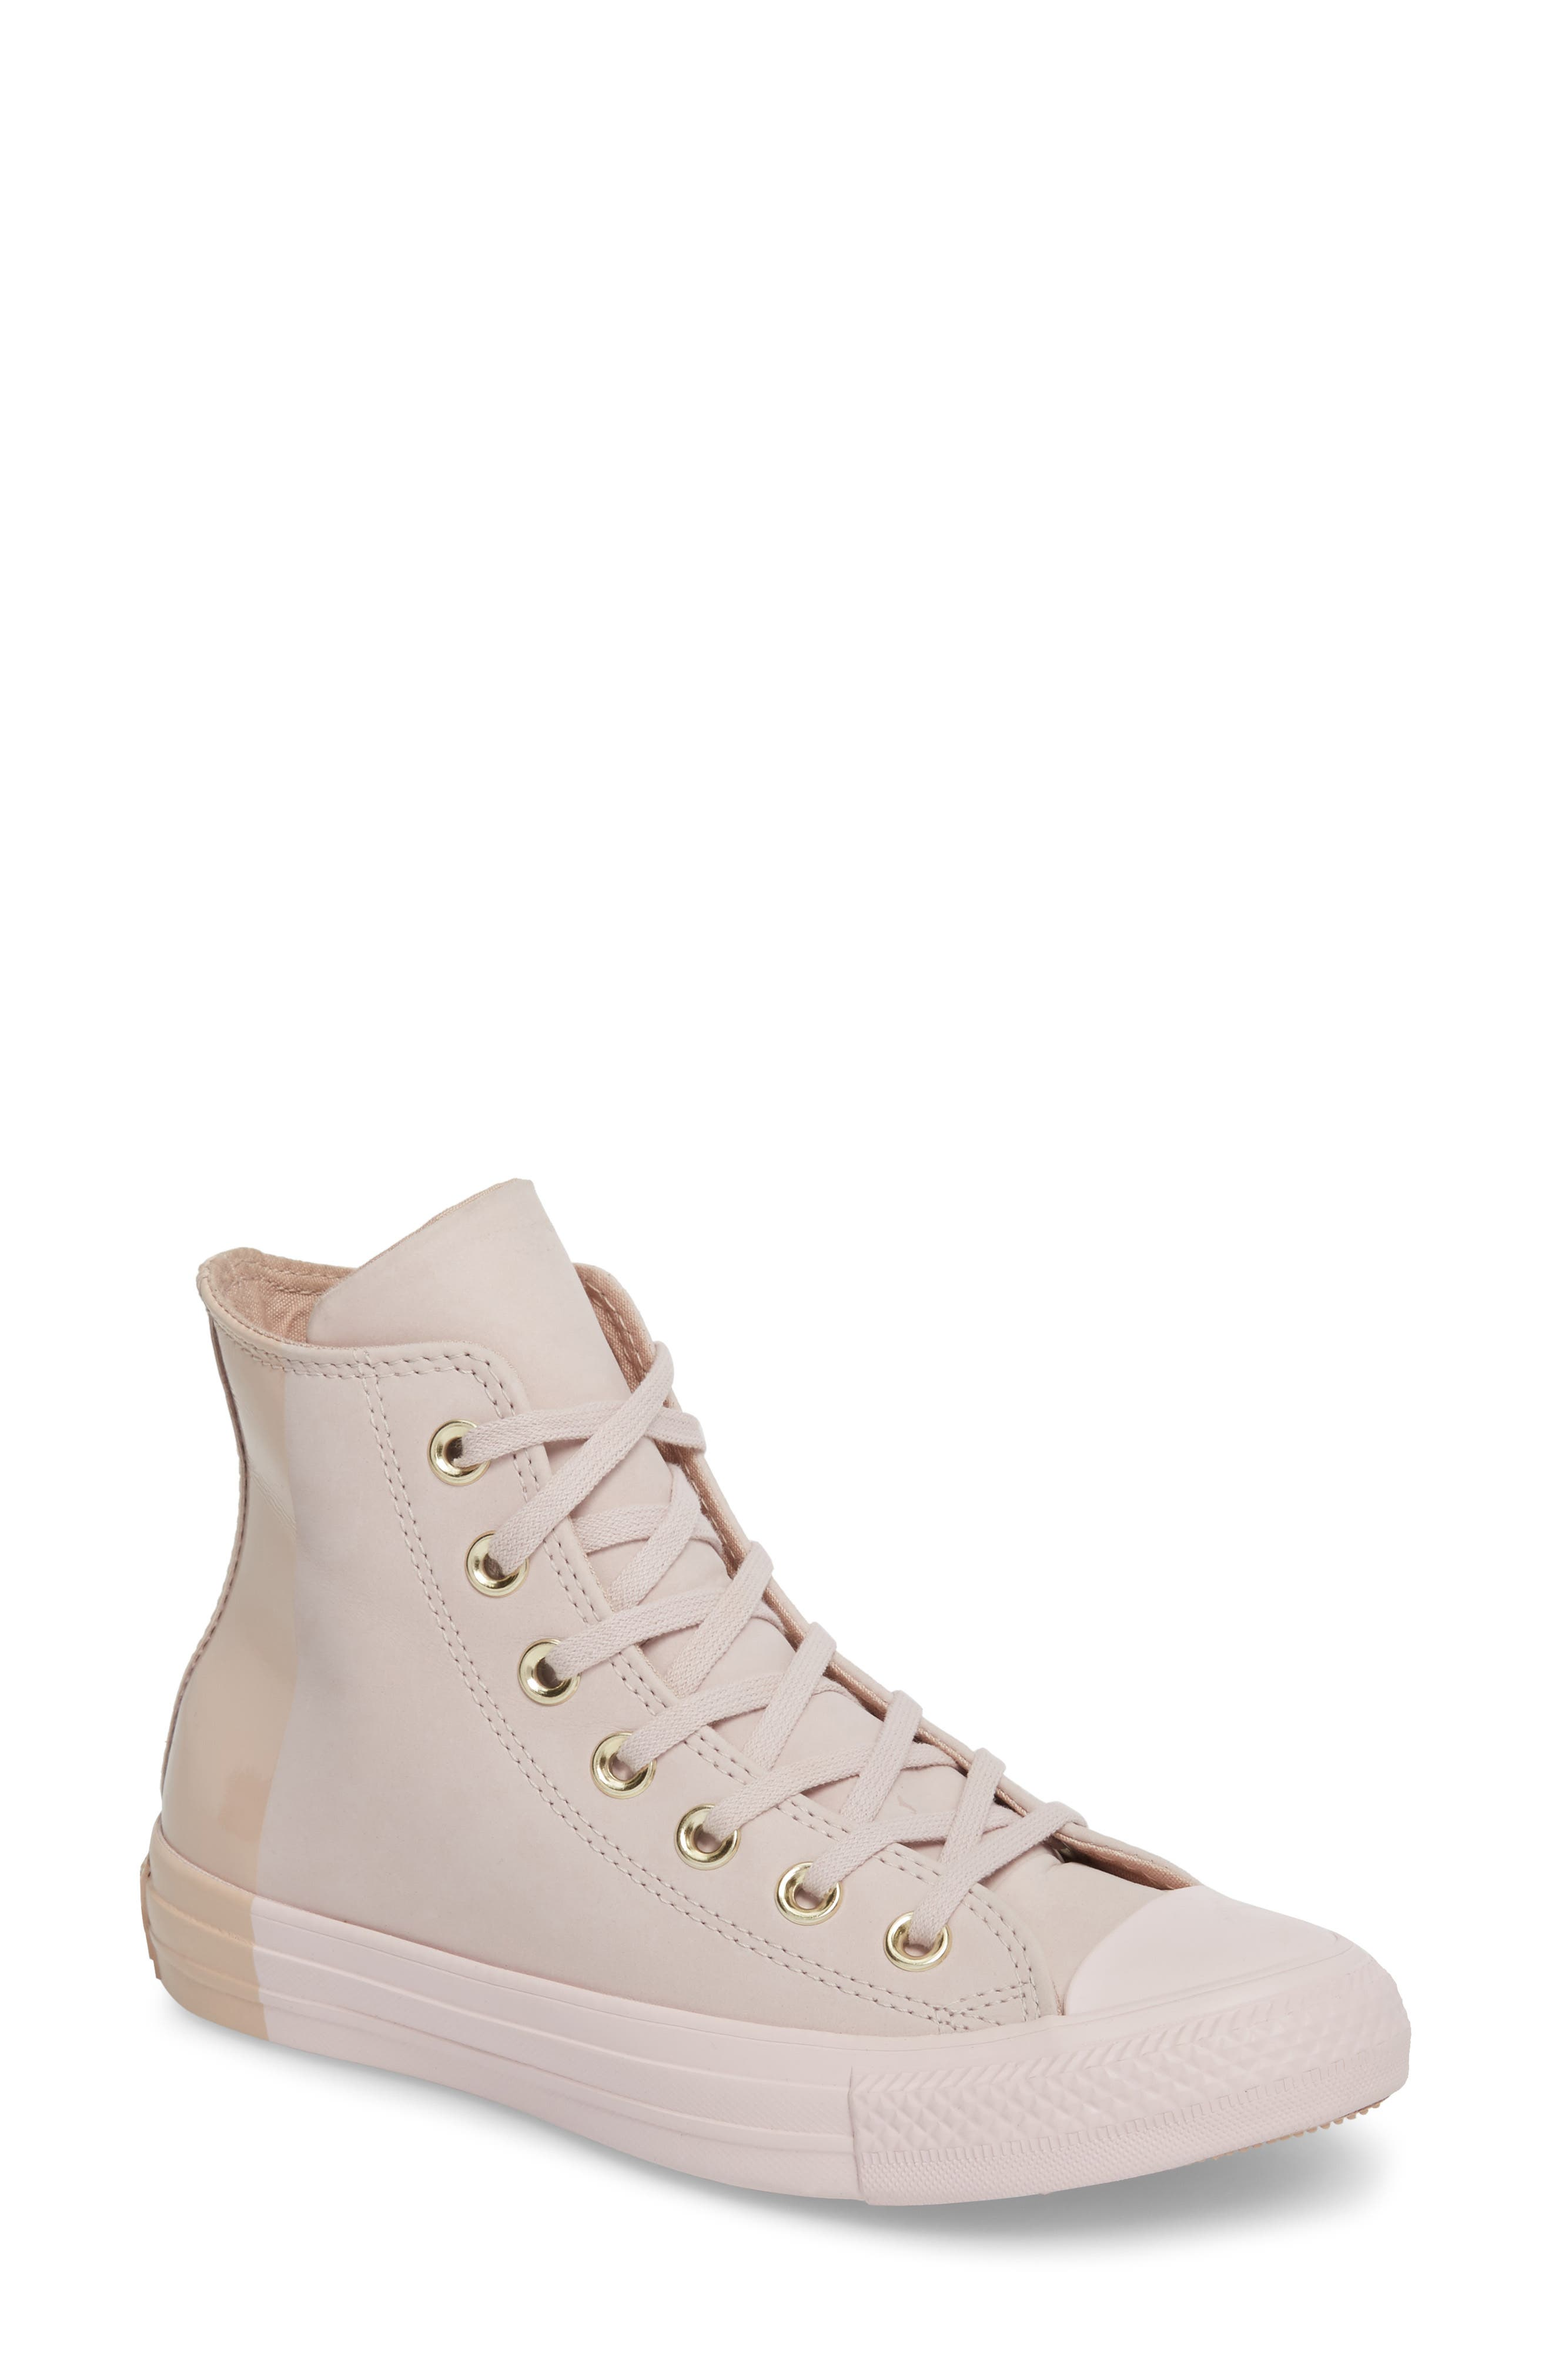 Chuck Taylor<sup>®</sup> All Star<sup>®</sup> Blocked High Top Sneaker,                             Main thumbnail 1, color,                             Barely Rose